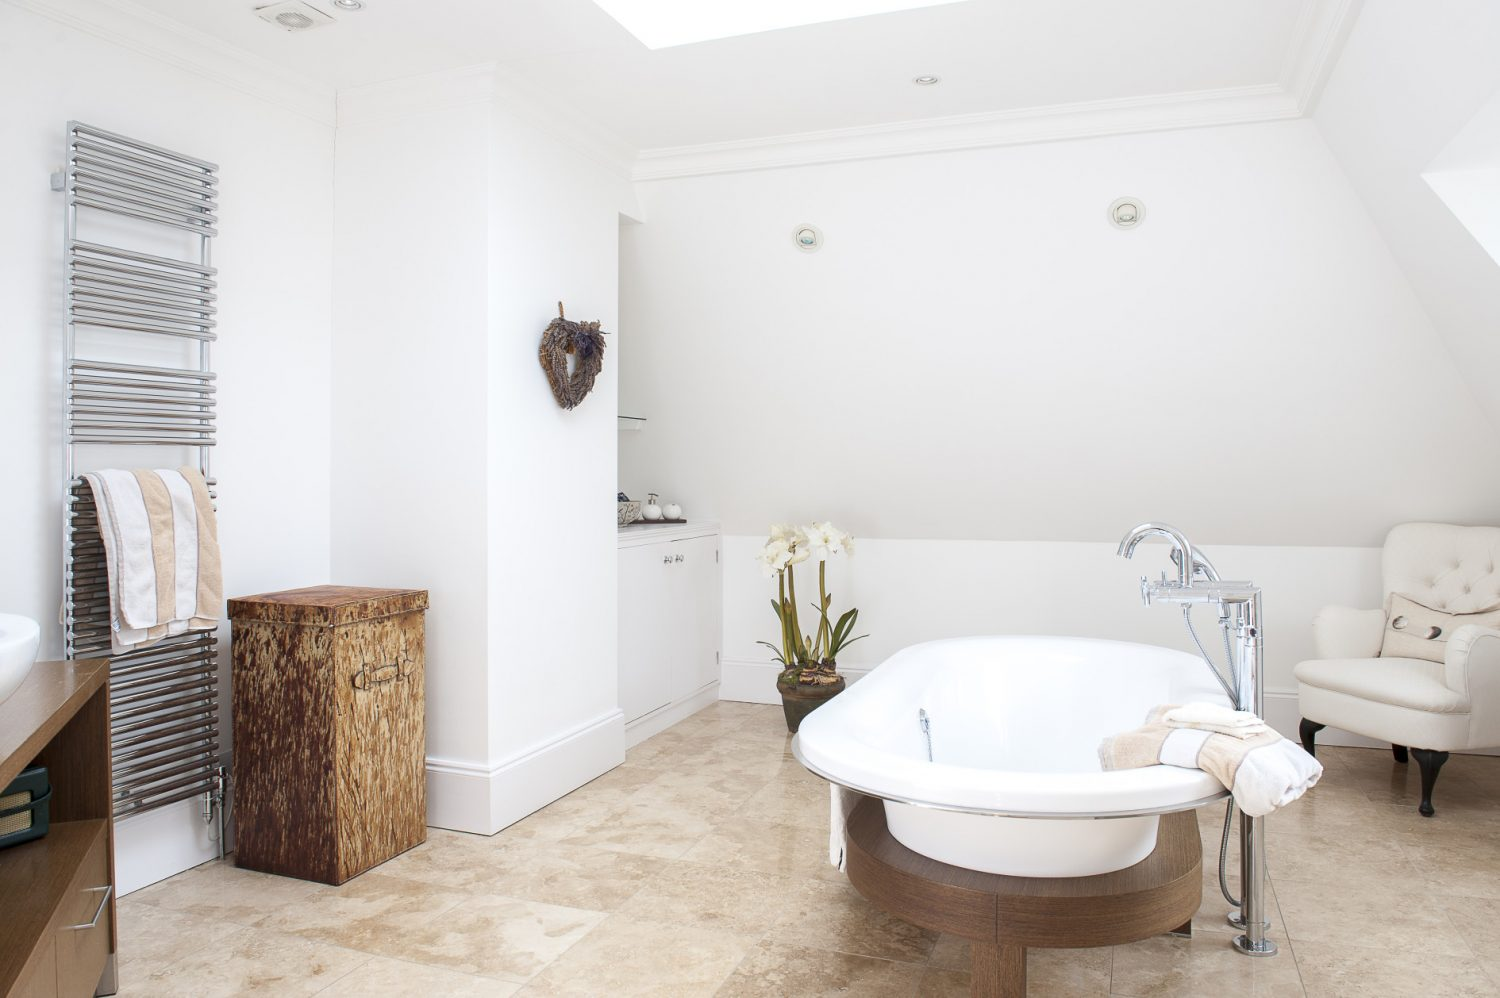 Helena and Julian wanted to be able to lie in the bath and gaze up at the stars, so positioned the double-ended bath under a central skylight window. Underfloor heating and a large heated towel rail keep this generous bathroom warm, even in the depths of winter